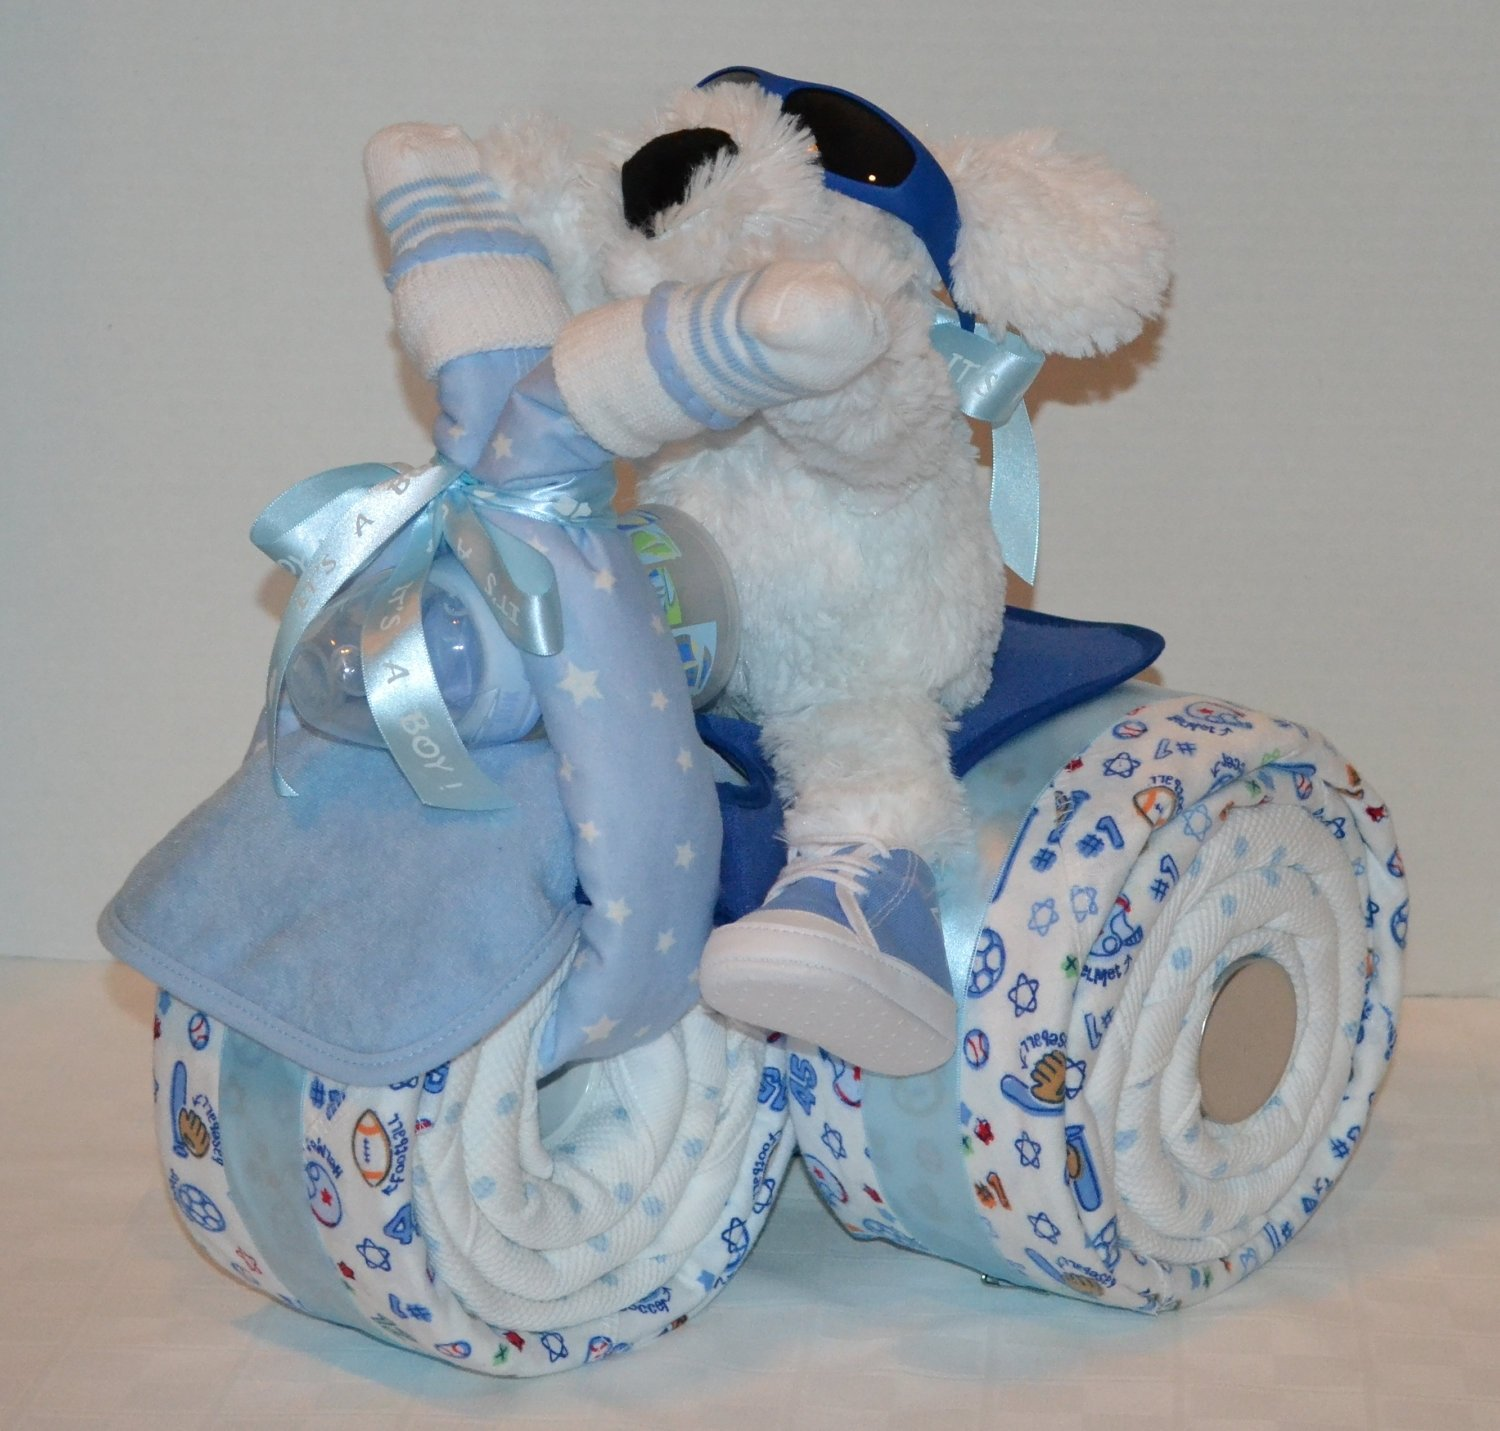 10 Fabulous Ideas For Baby Shower Gifts ideas for baby boy baby shower omega center ideas for baby 1